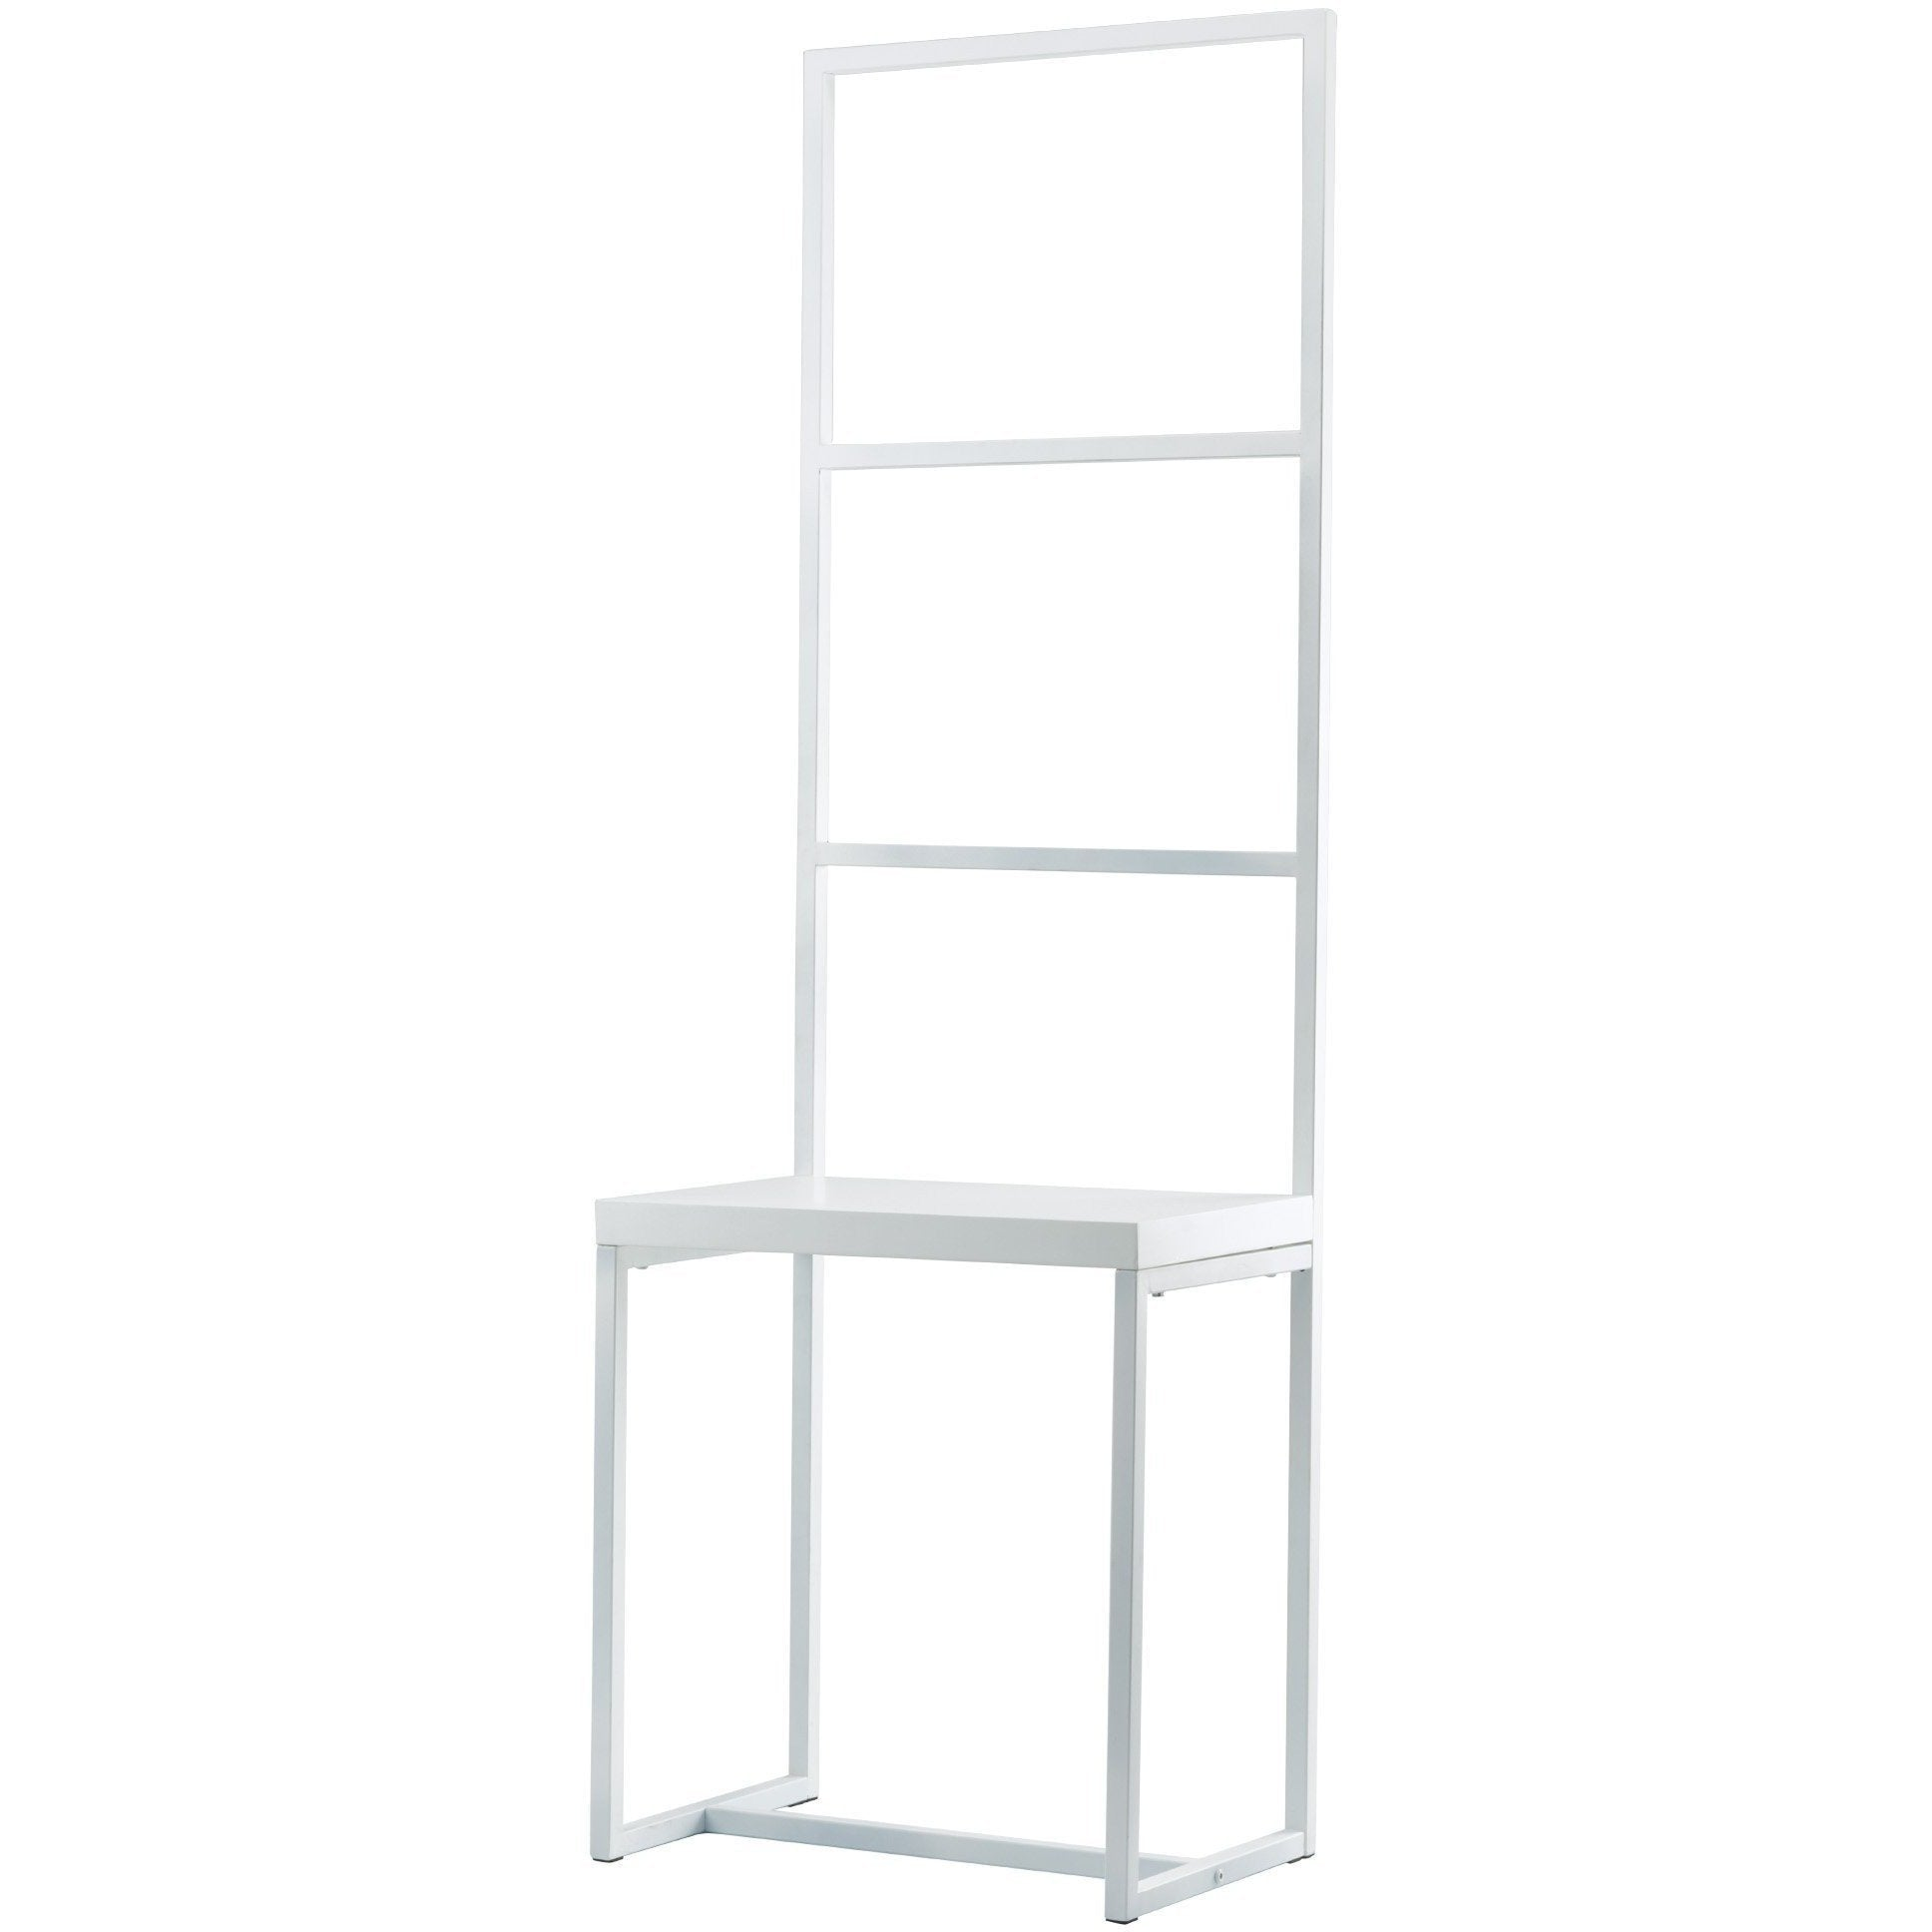 Orto Rubberwood Bathroom Spa Towel Rack Ladder, Towel Holder with Stool Bench